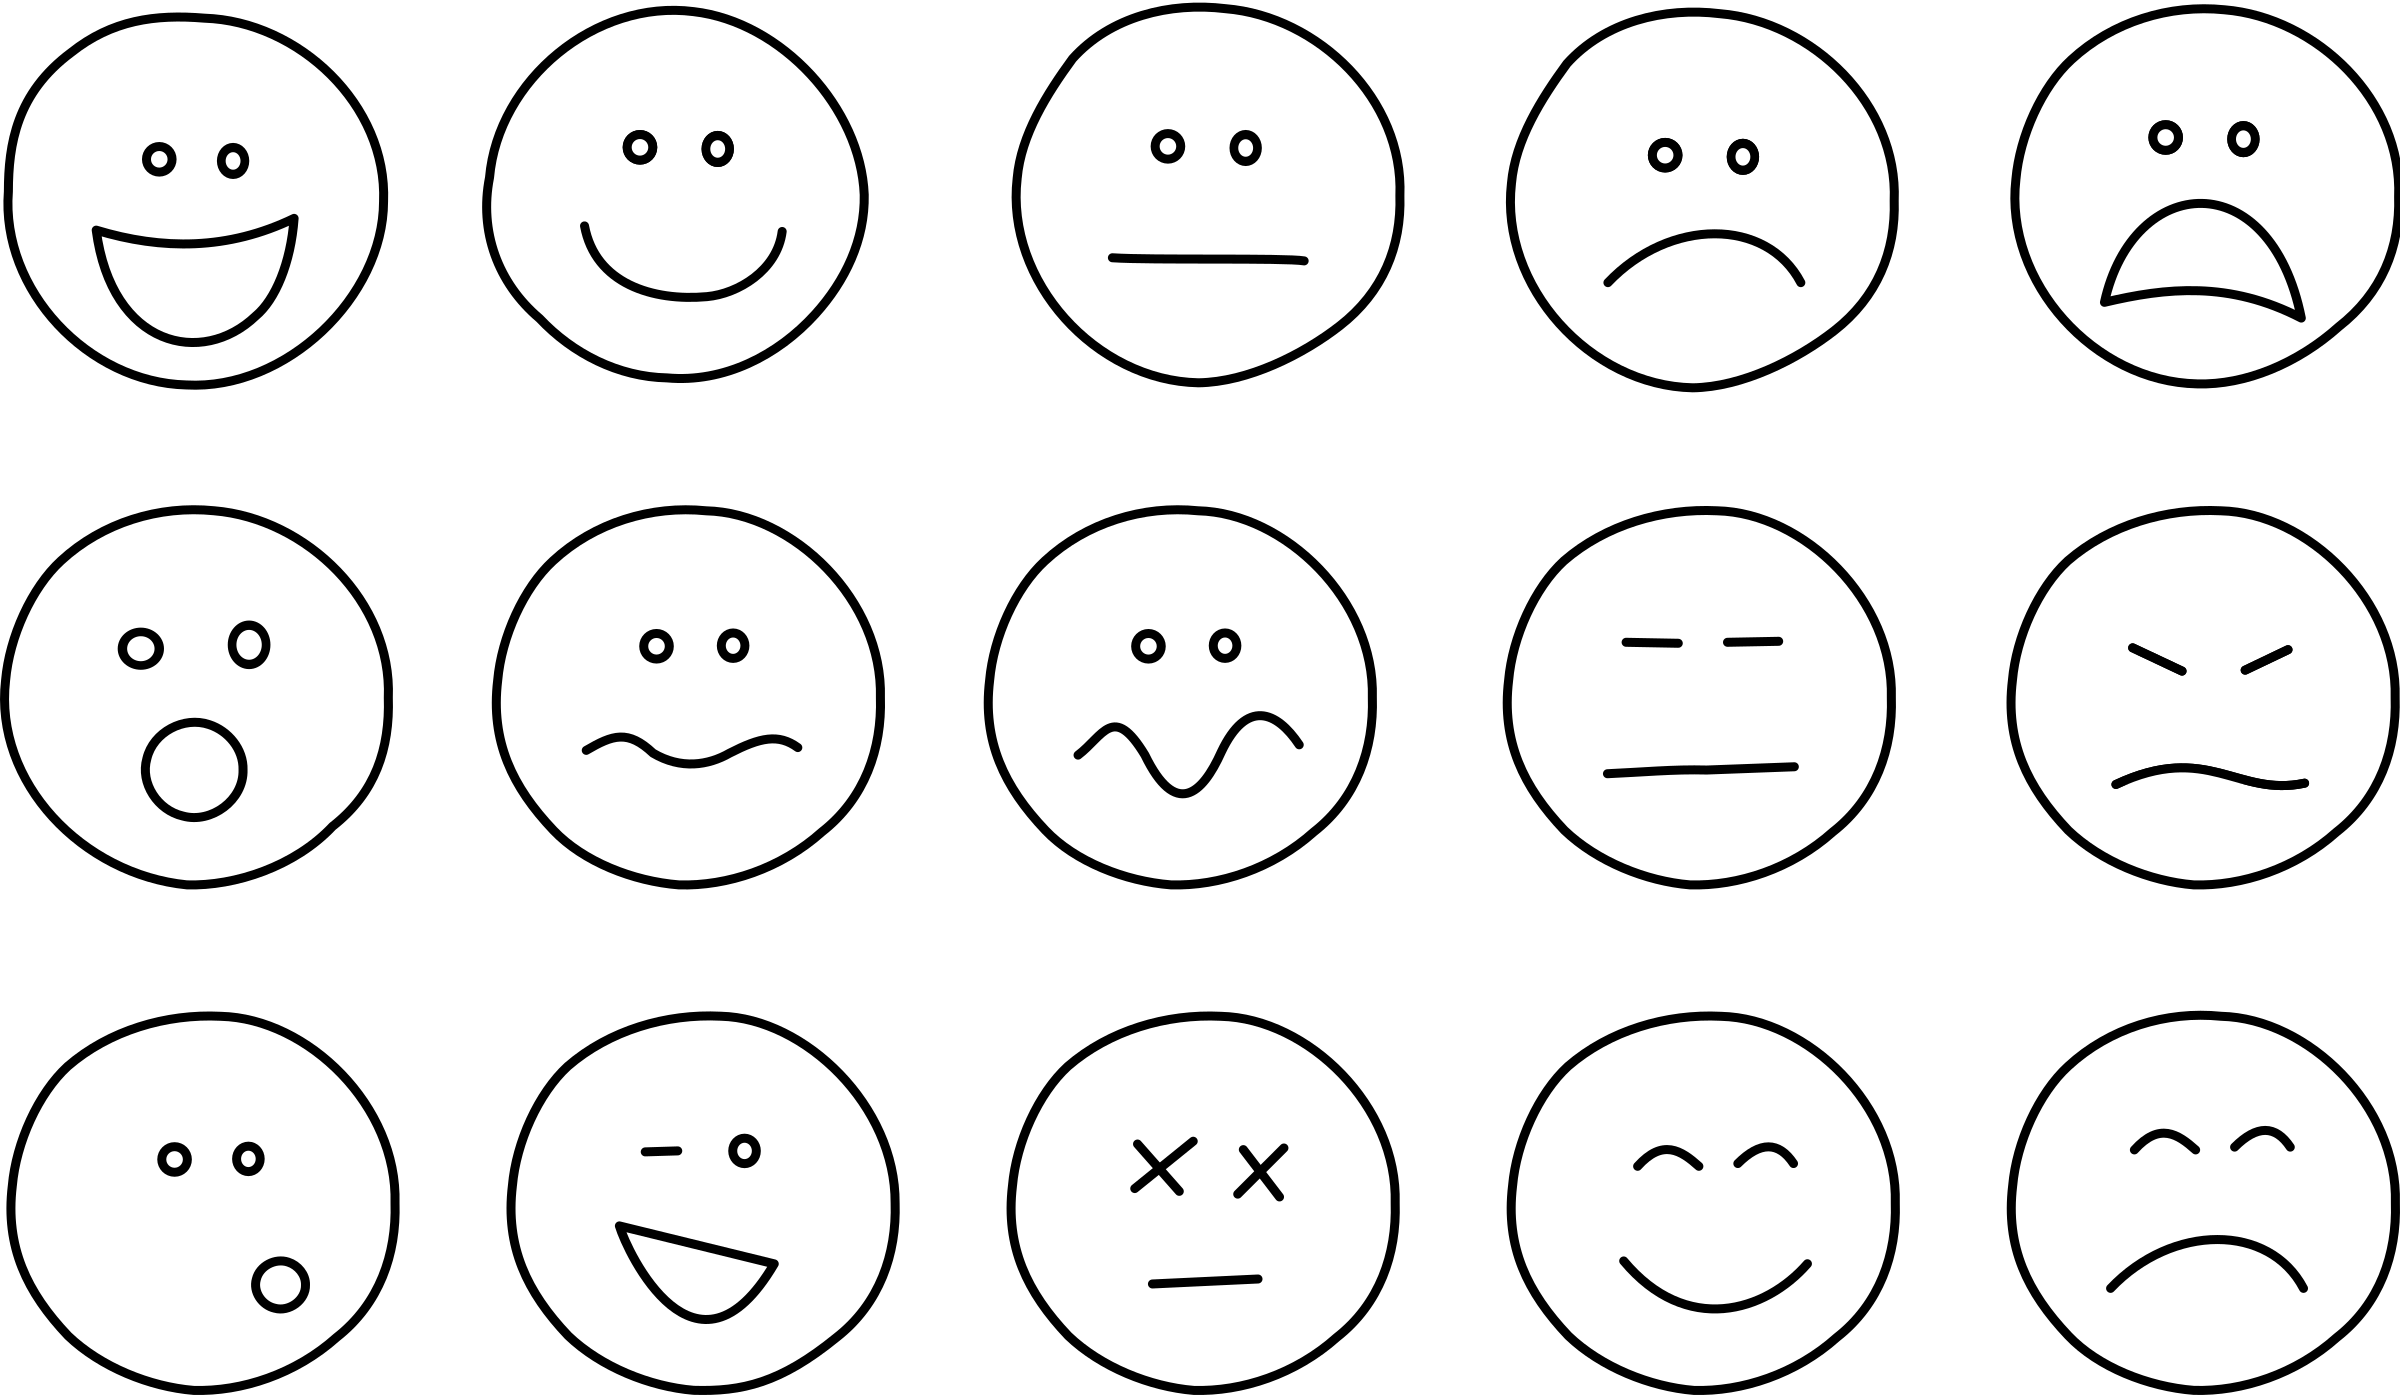 jpg black and white download Smiley face black and white clipart. Big image png